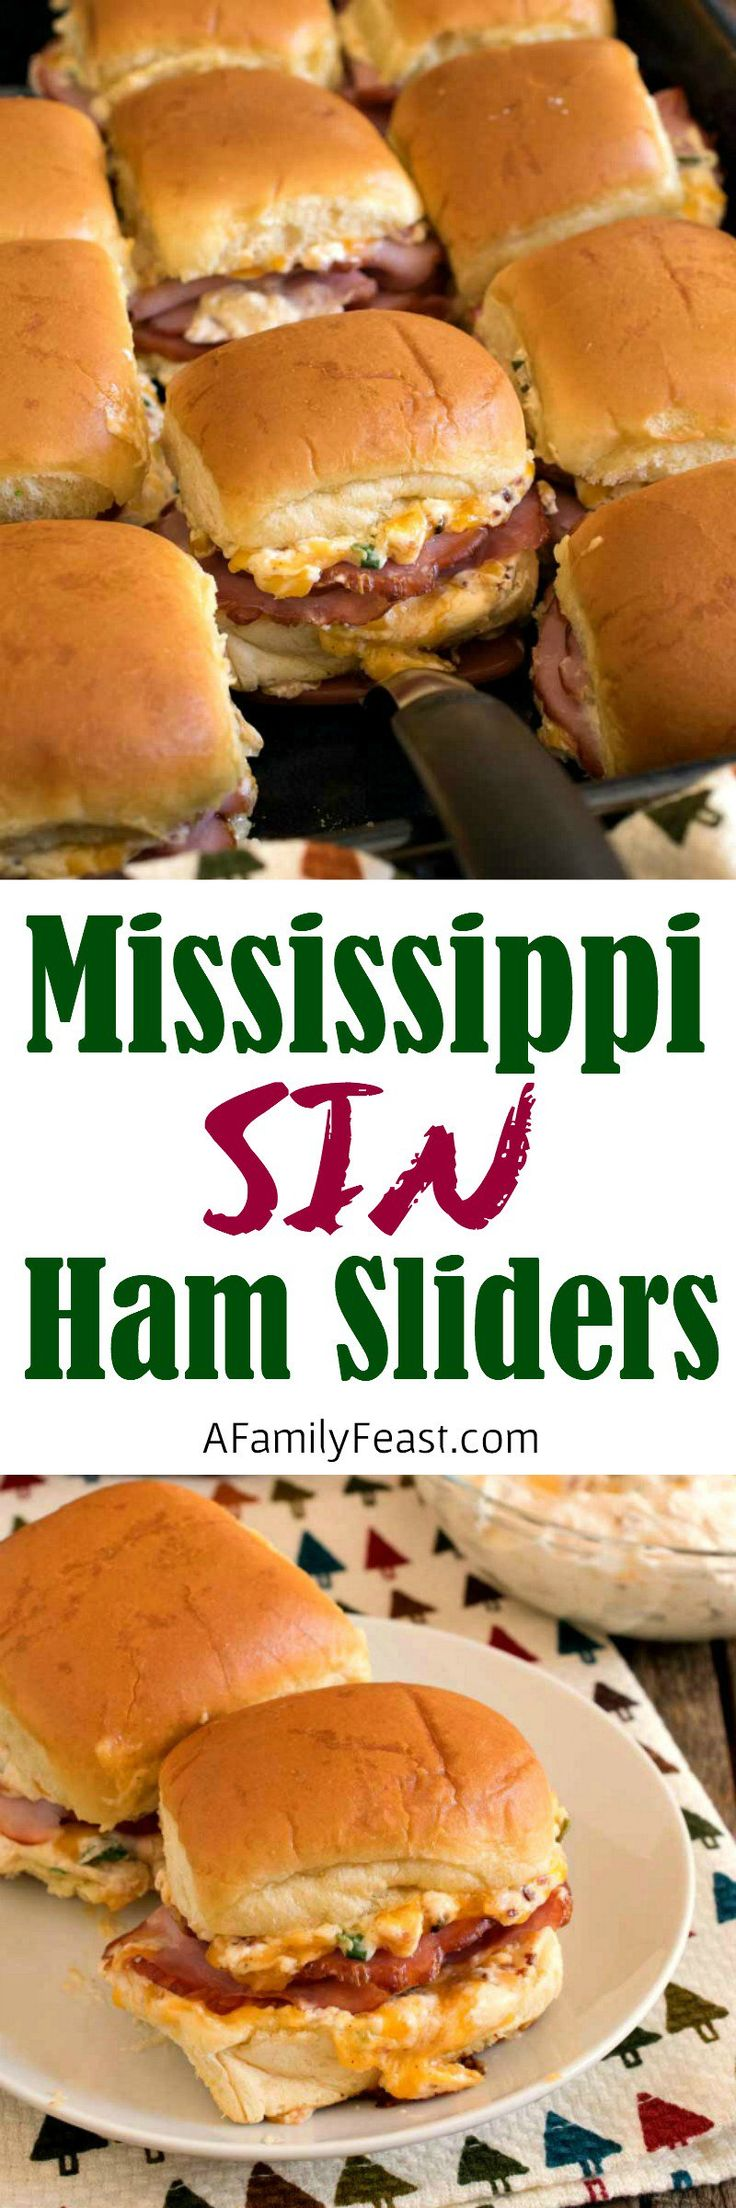 Mississippi Sin Ham Sliders - Delicious ham sliders with a zesty cheesy topping - just like the Mississippi Sin Dip! #ad @HatfieldMeats #SimplyHatfield #resetthetable